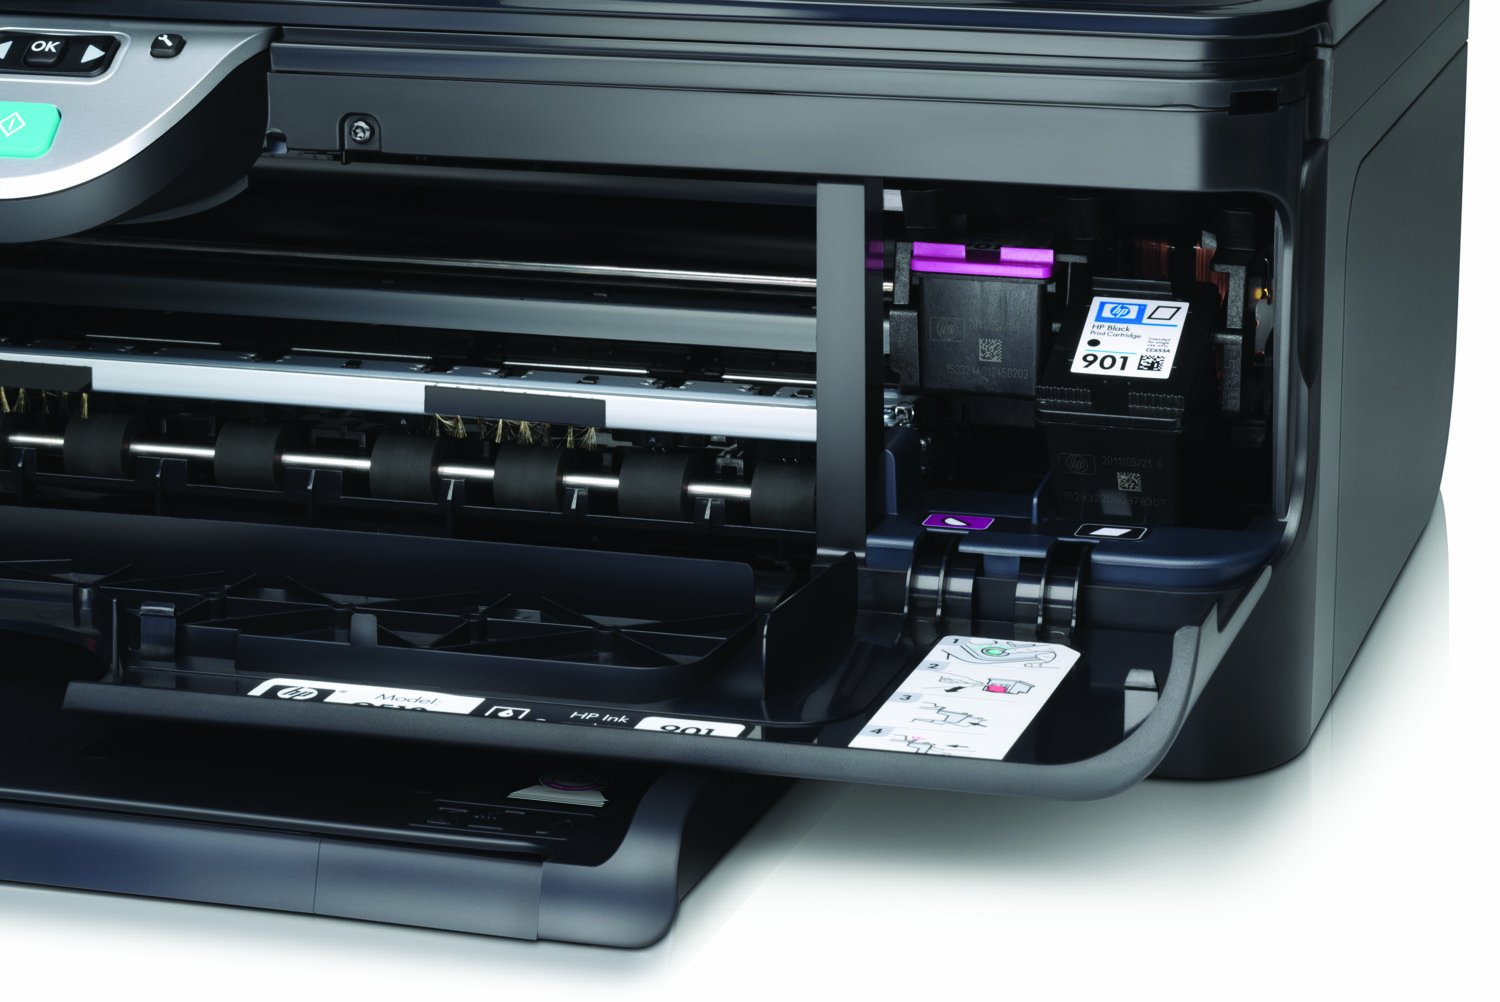 HP Officejet 4500 Wireless All-in-One Printer (Print, Scan, Copy, Fax):  Amazon.co.uk: Computers & Accessories